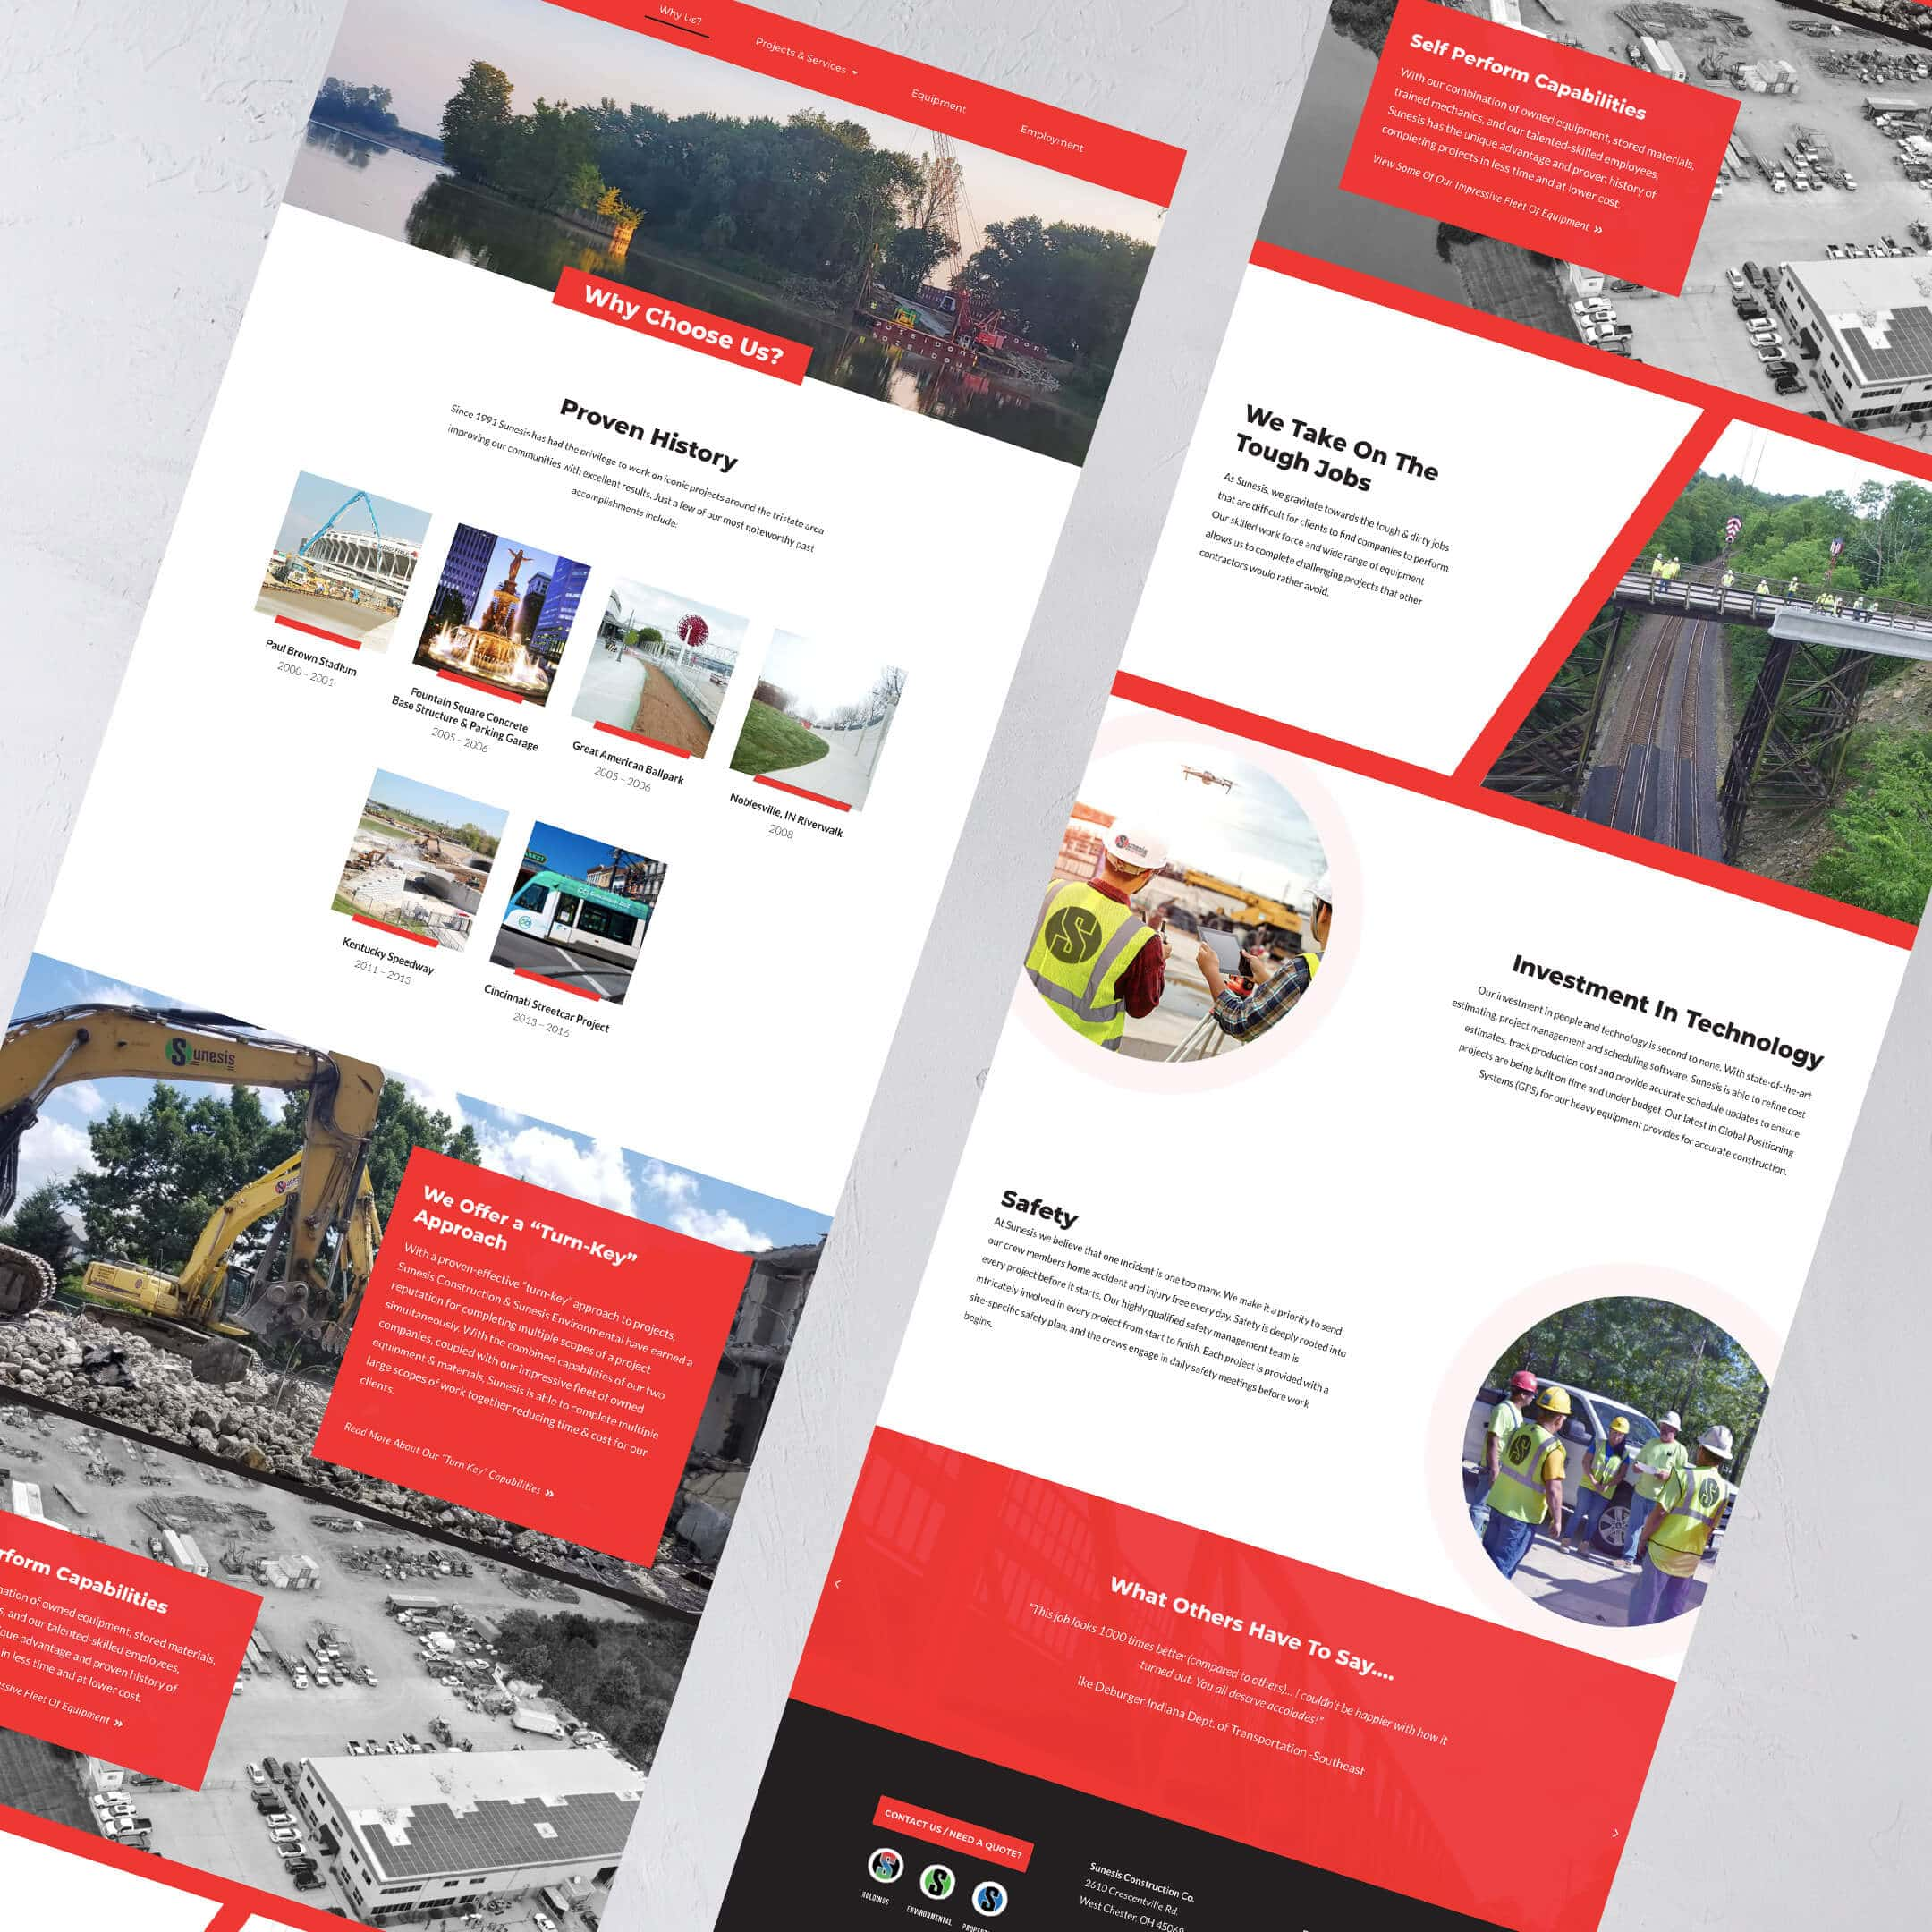 Sunesis Construction Website Why Us Page - Construction Website Example and Portfolio